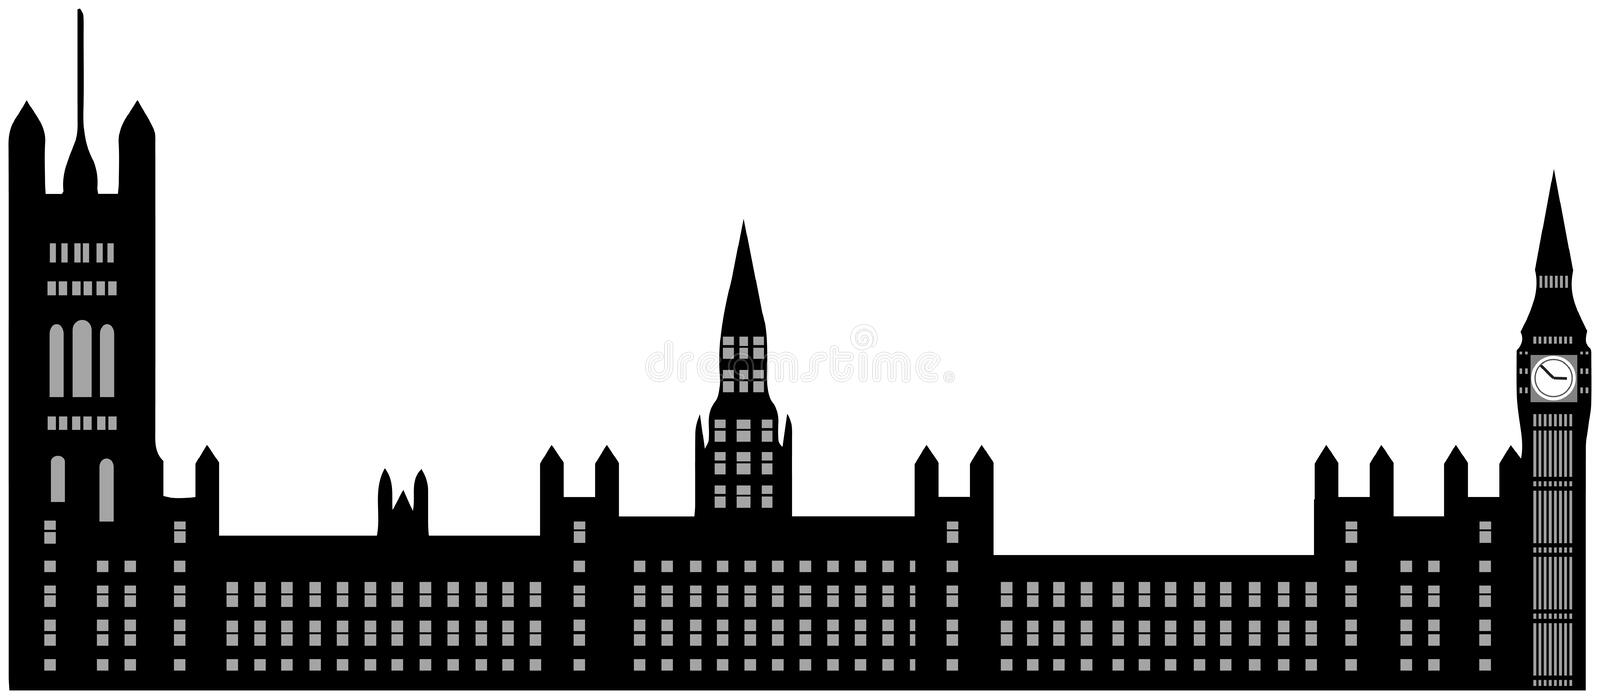 Download Image Of Cartoon Houses Parliament And Big Ben Silhouette Vector Illustration Isolated On